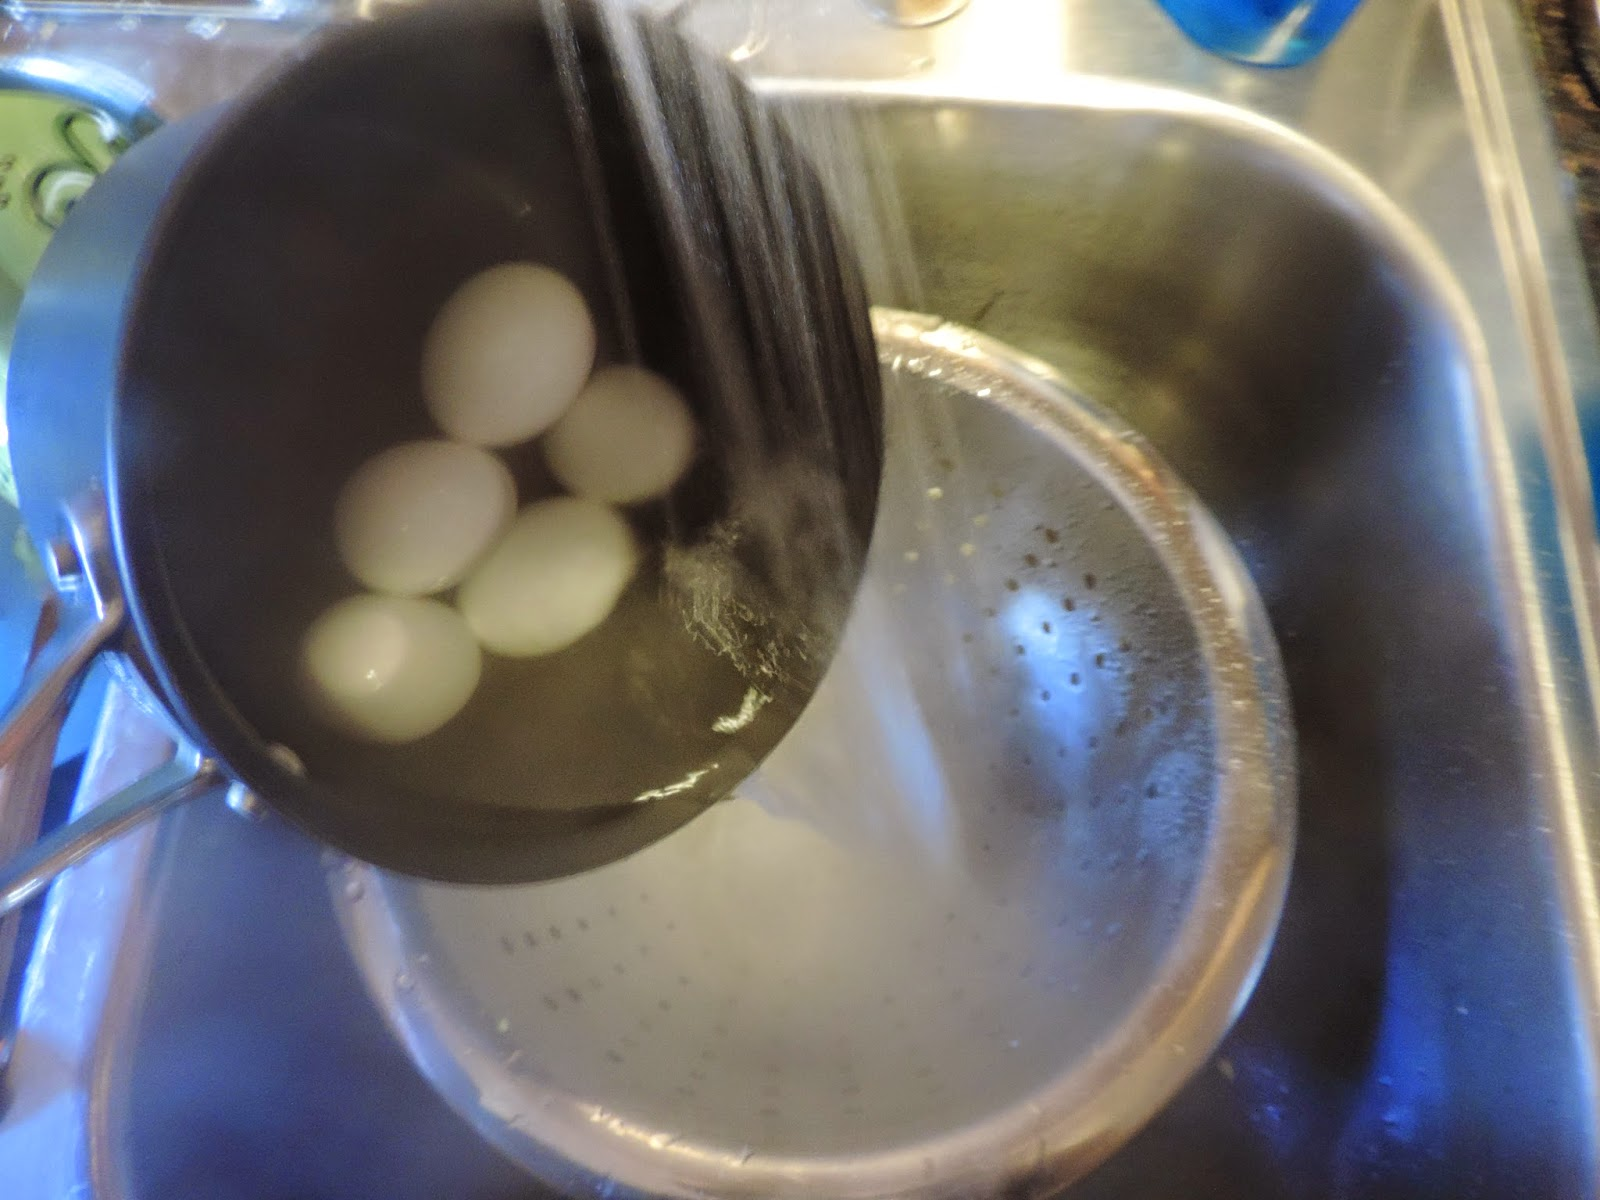 The eggs being poured into a strainer.